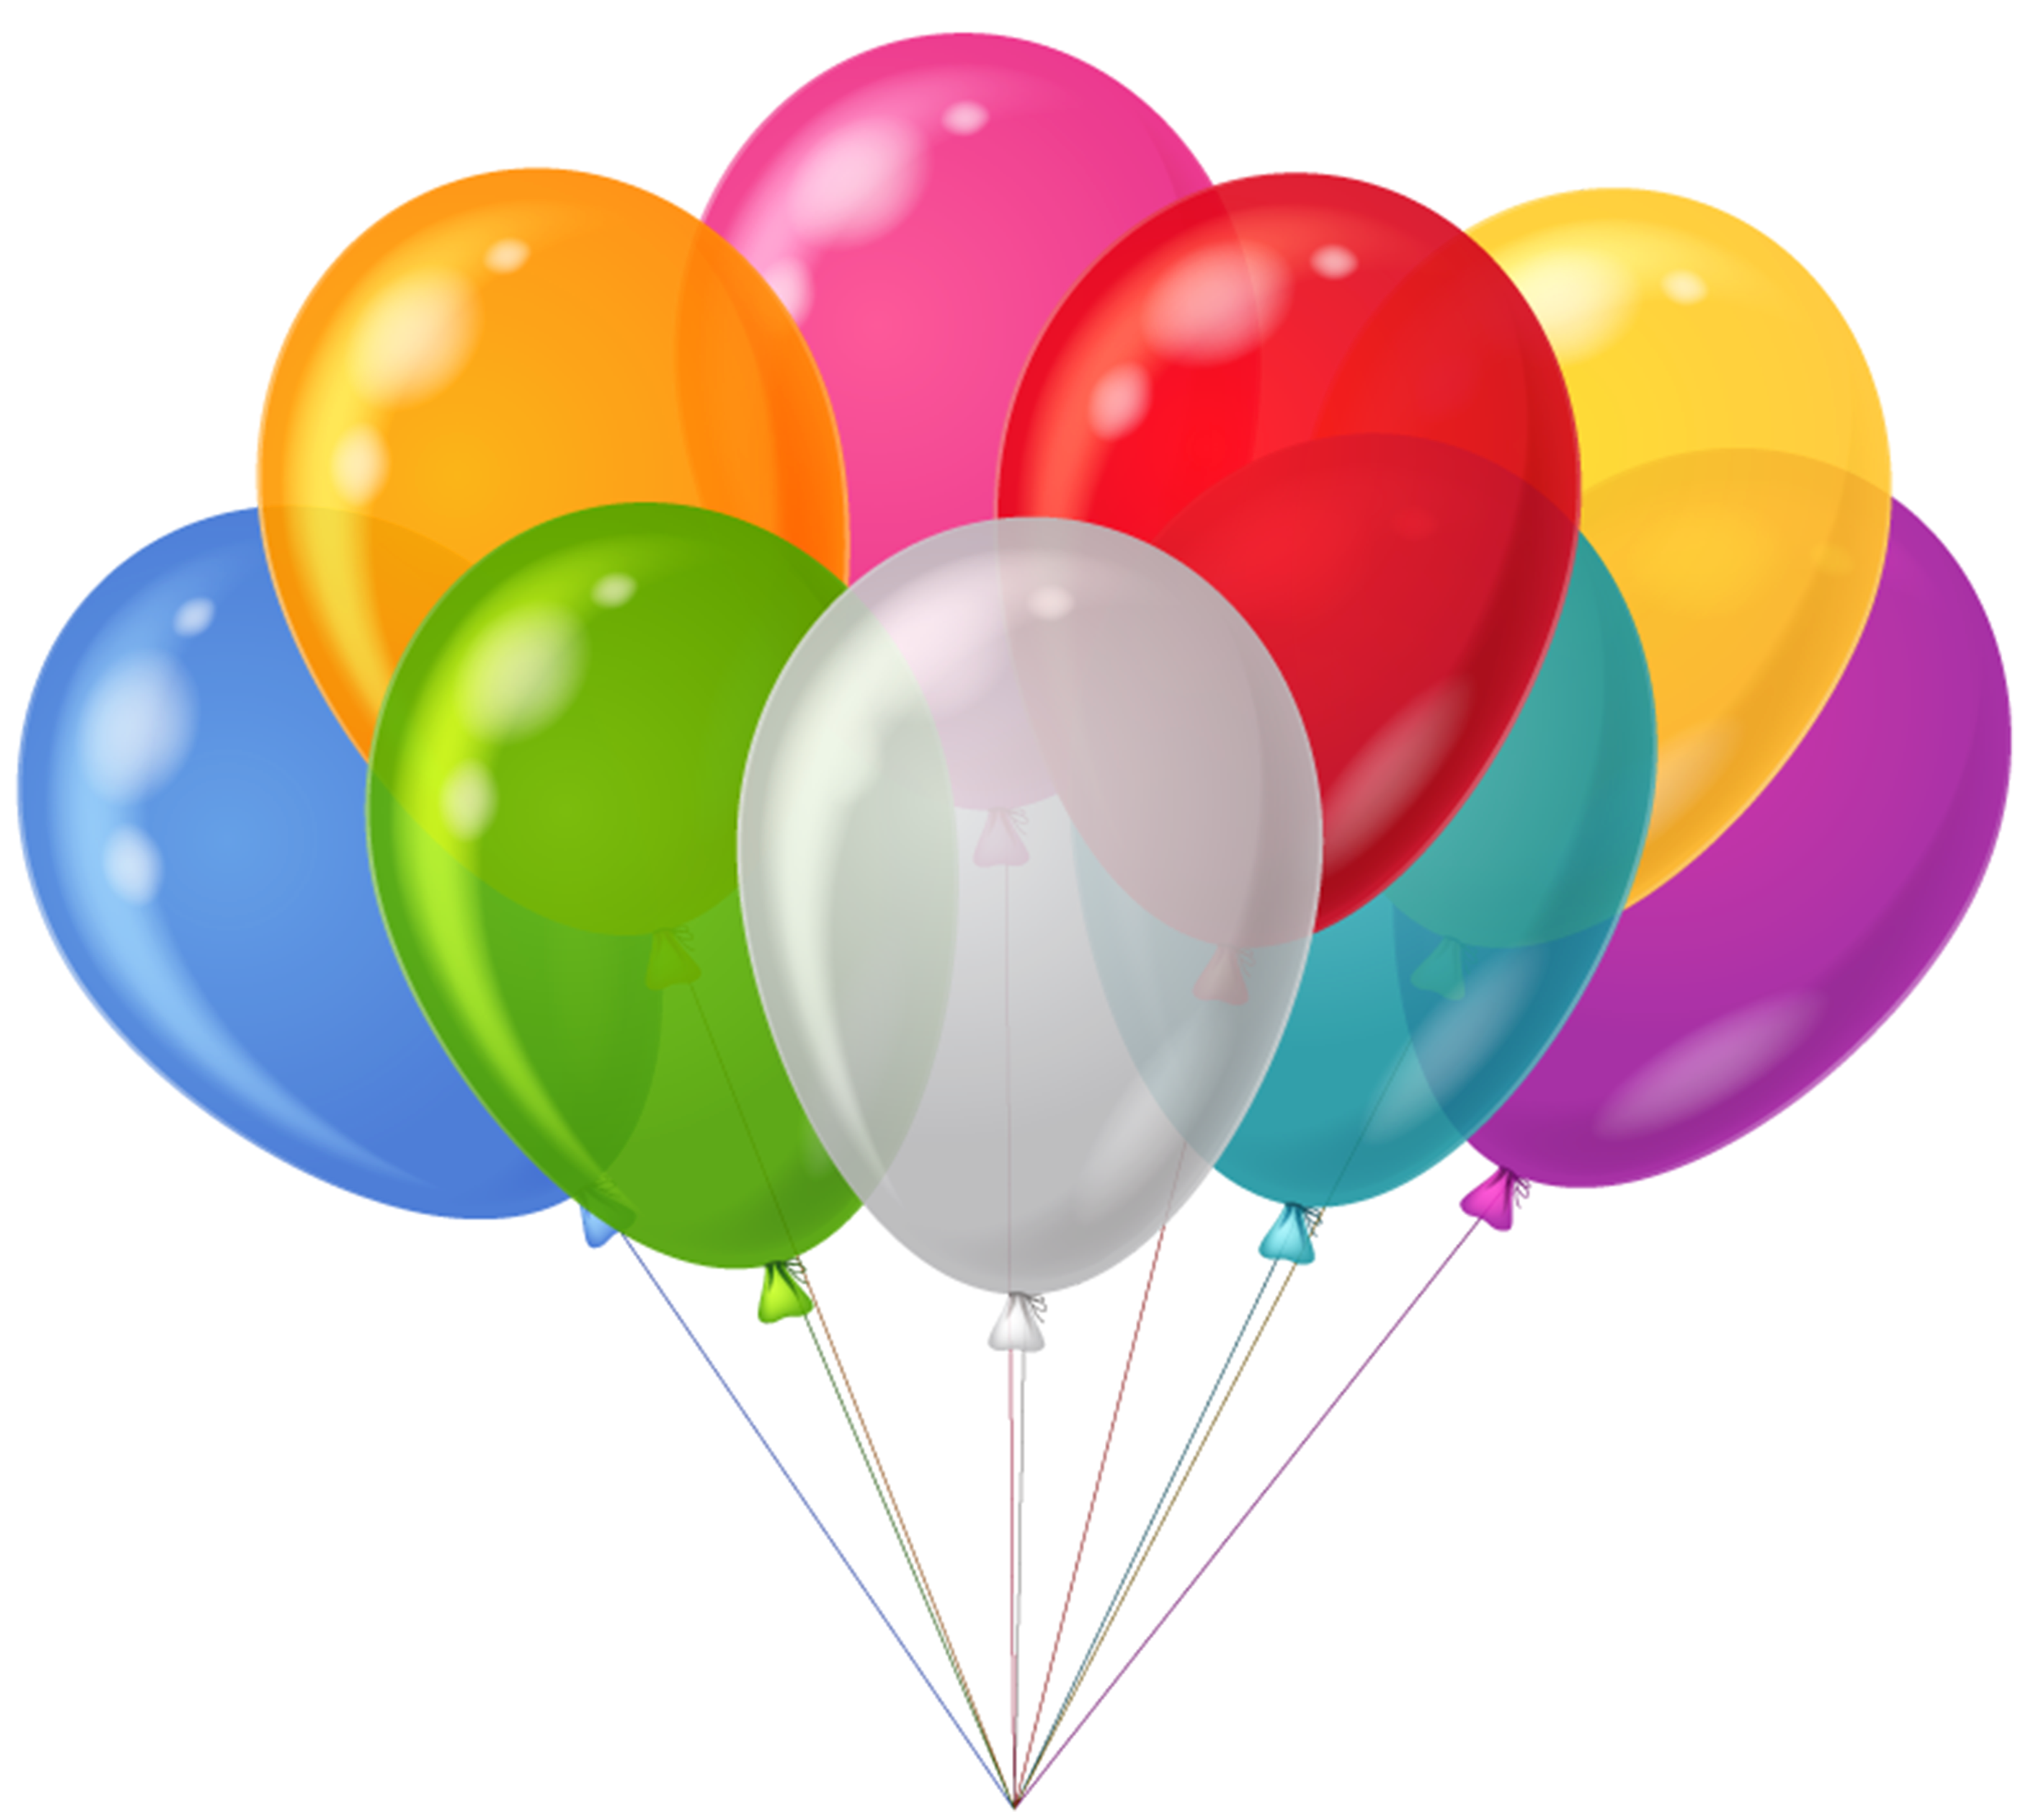 3250x2922 Free Birthday Balloon Clip Art Free Clipart Images 5